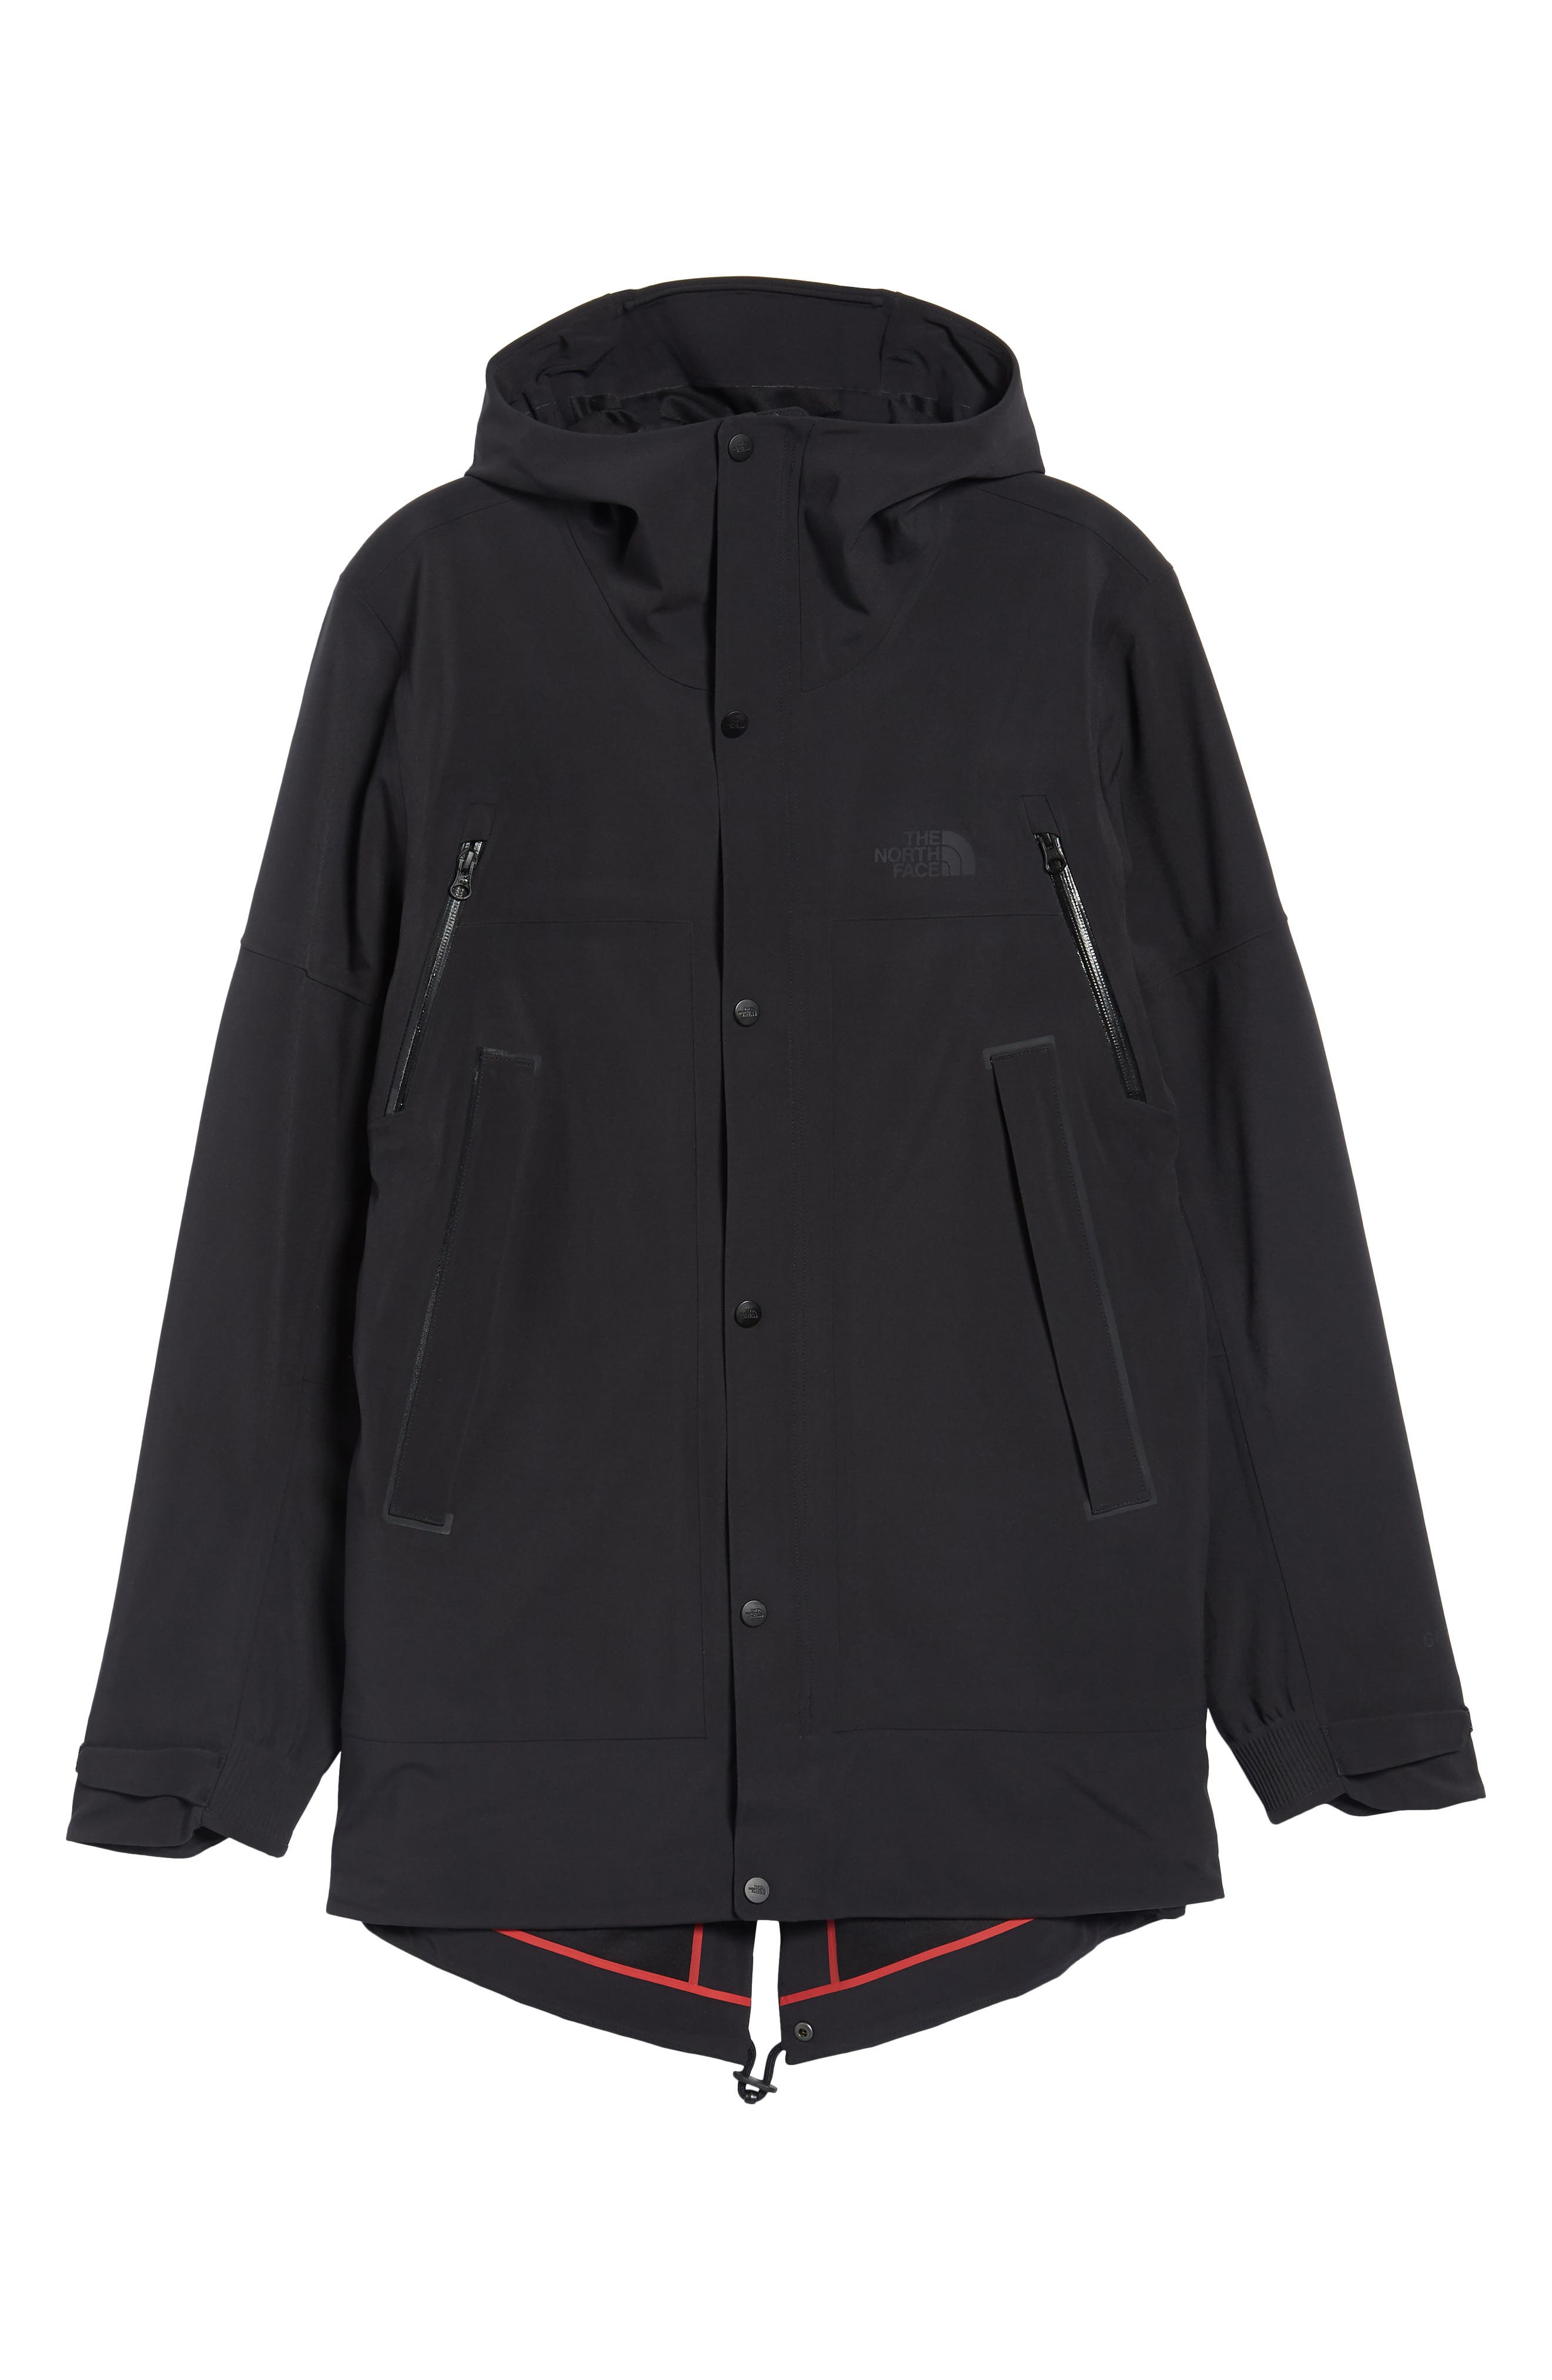 THE NORTH FACE, Apex Flex Gore-Tex<sup>®</sup> Parka, Alternate thumbnail 6, color, 001